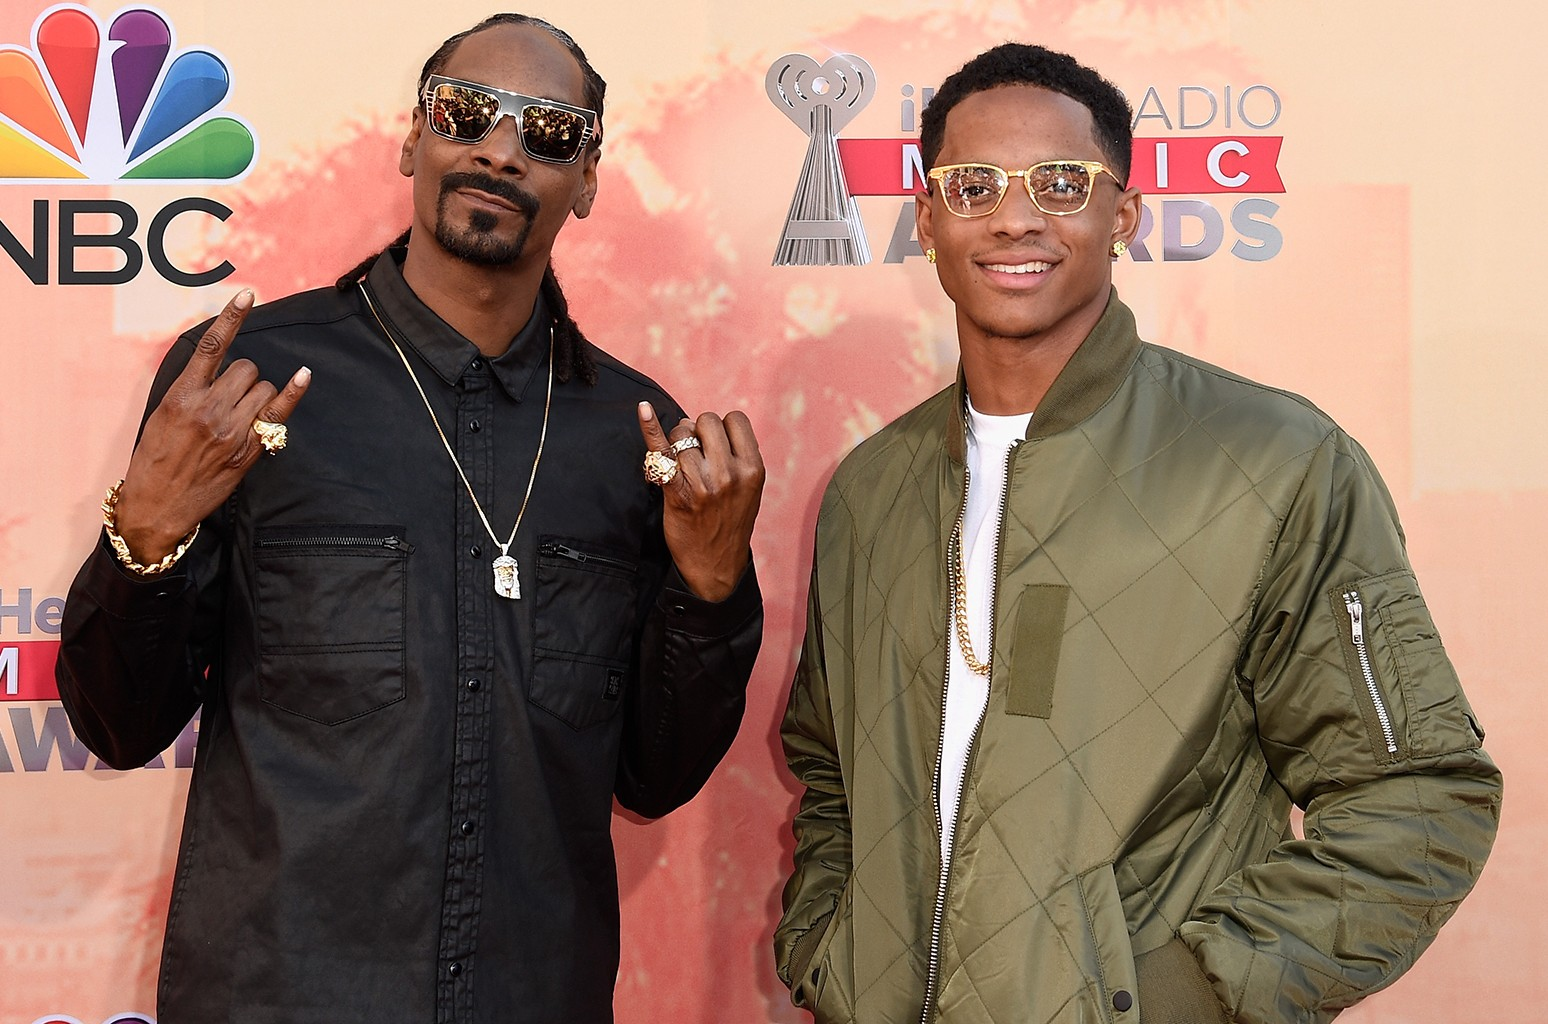 Snoop Dogg and Cordell Broadus